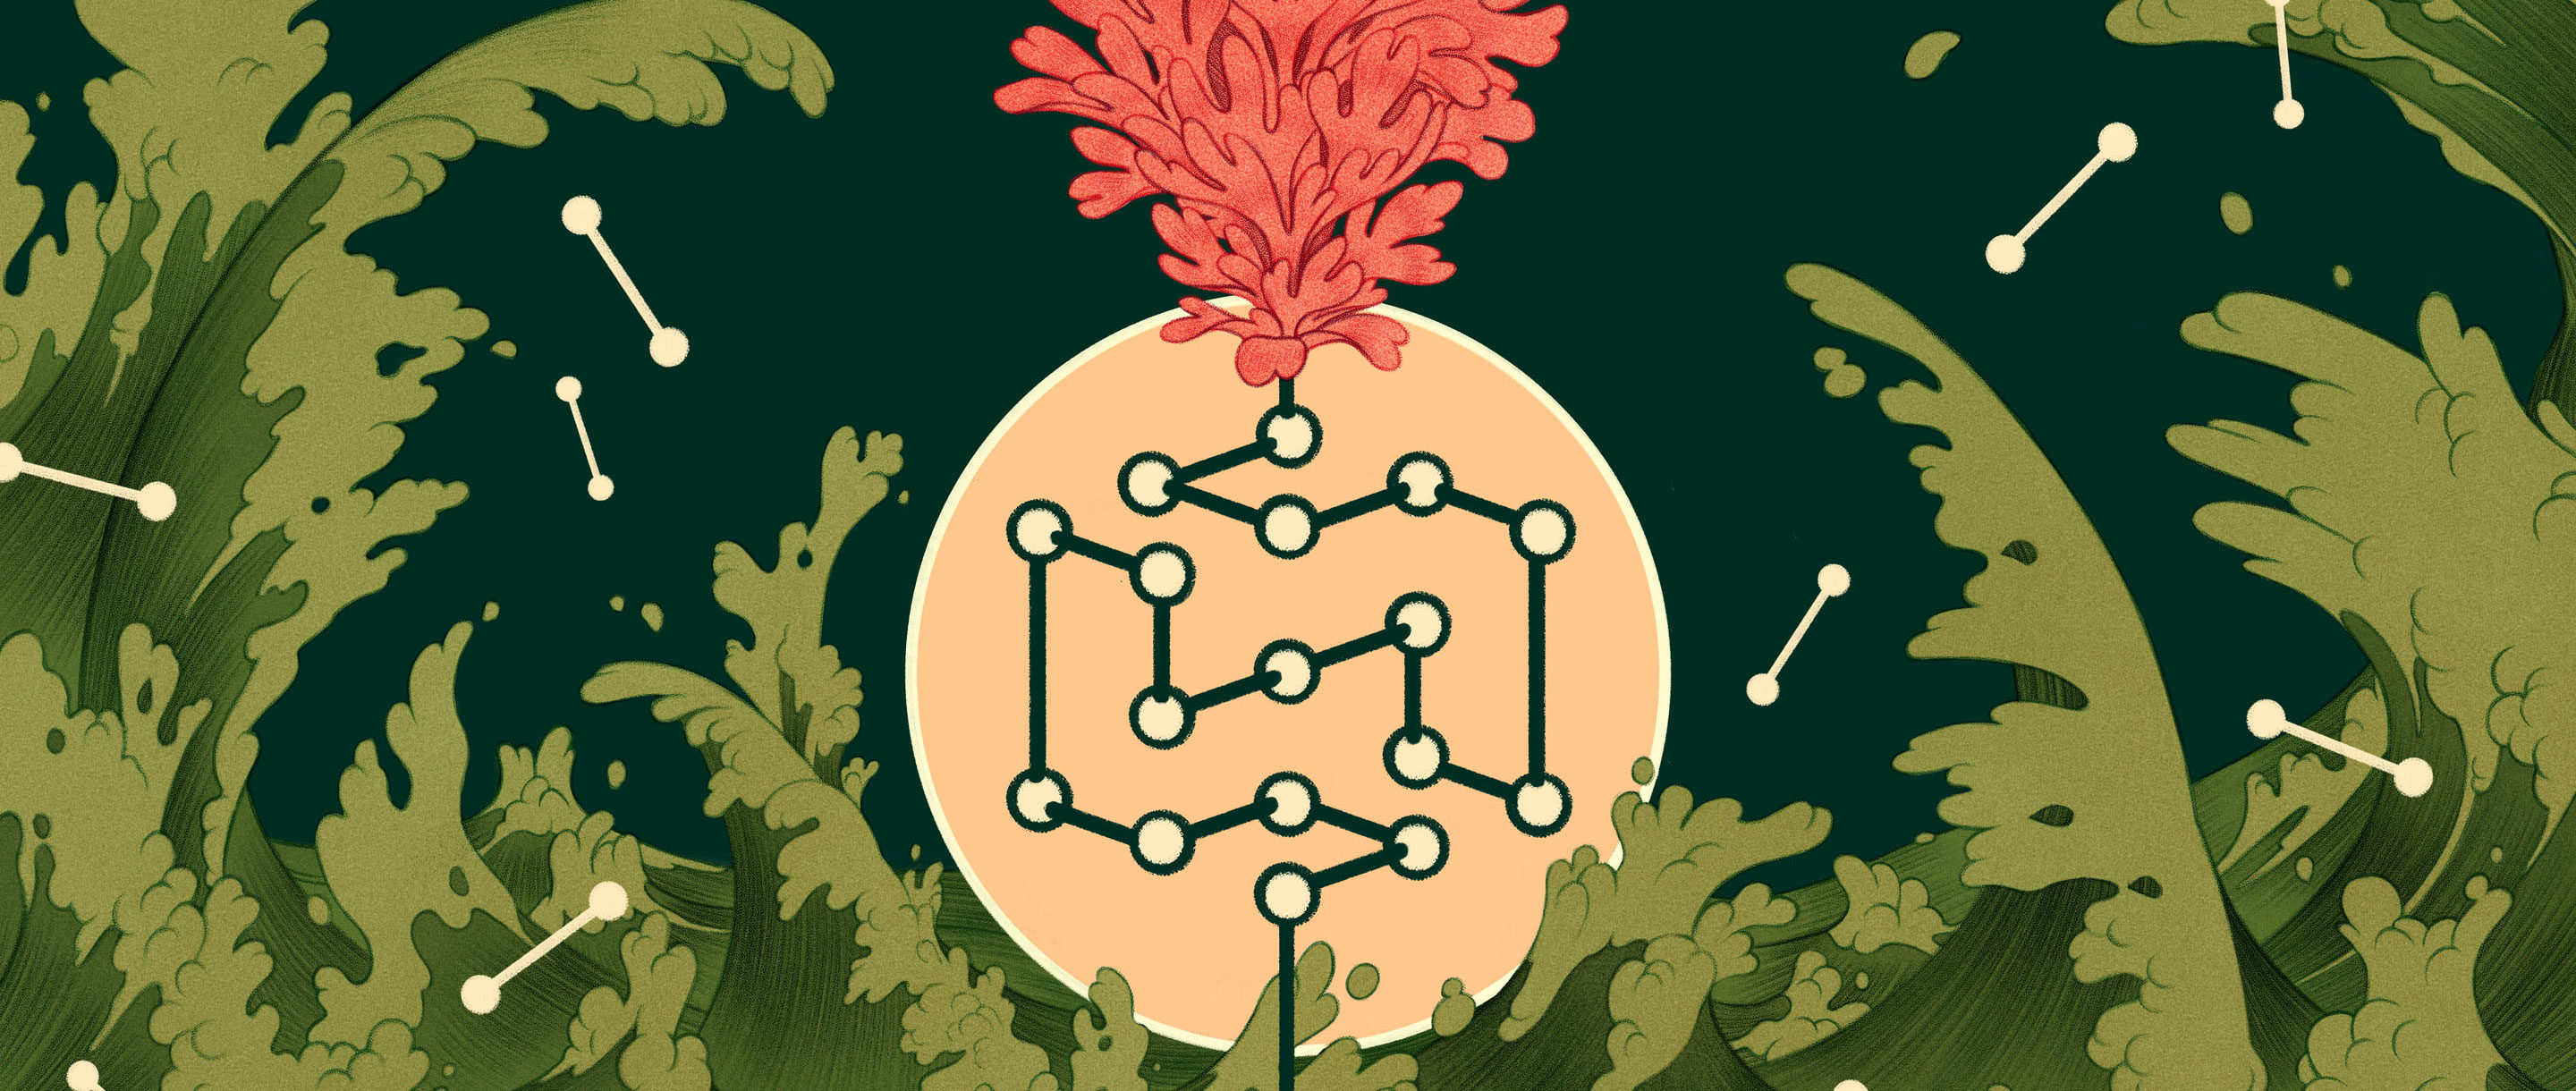 Which mattered first at the dawn of life: proteins or nucleic acids? Proteins may have had the edge if a theorized process let them grow long enough to become self-replicating catalysts.